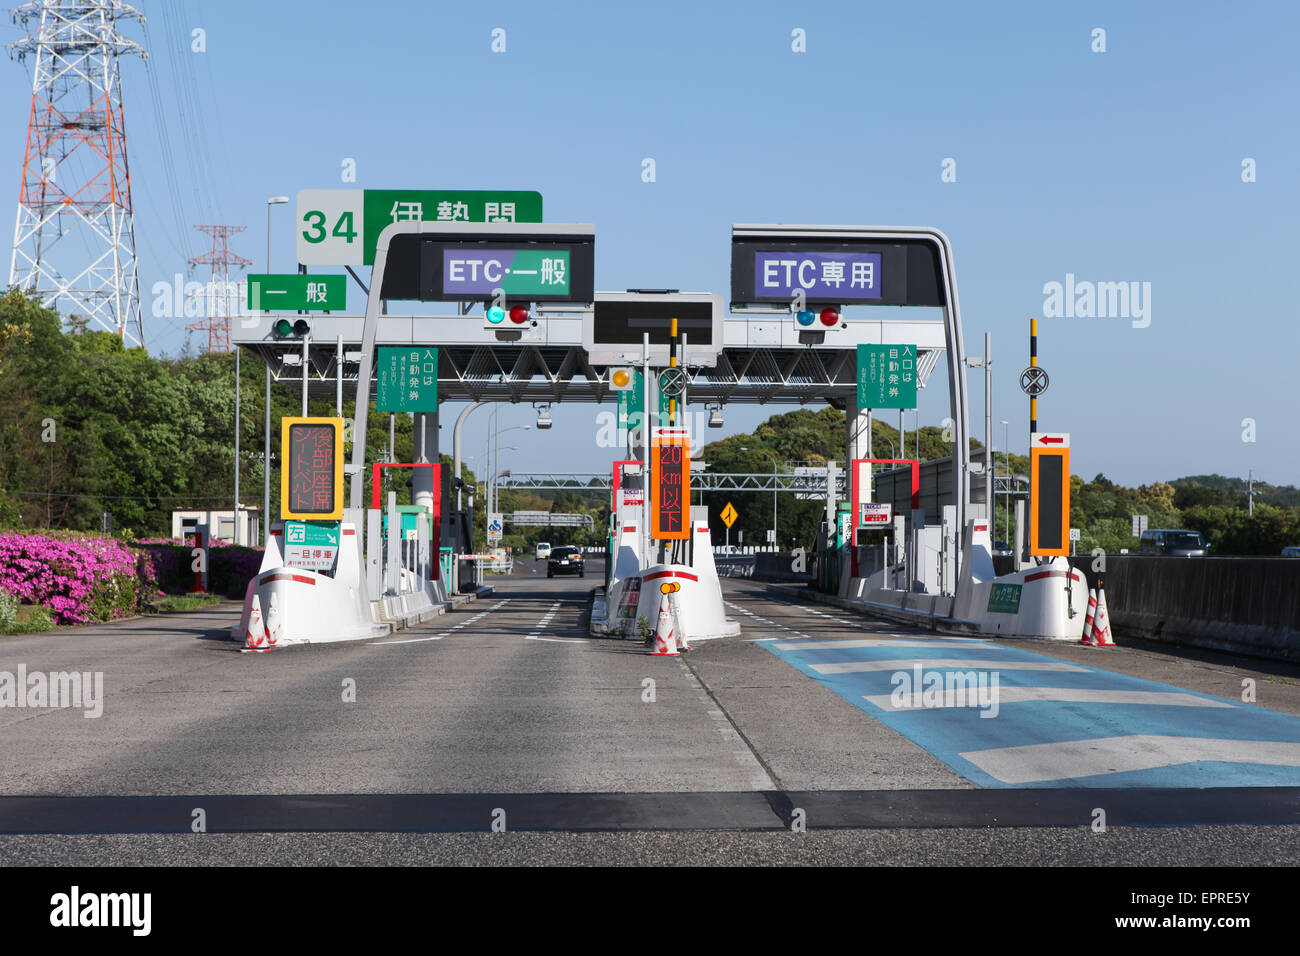 Japanese expressway toll stop including pre paid ETC (Electronic toll collection) and regular lanes - Stock Image